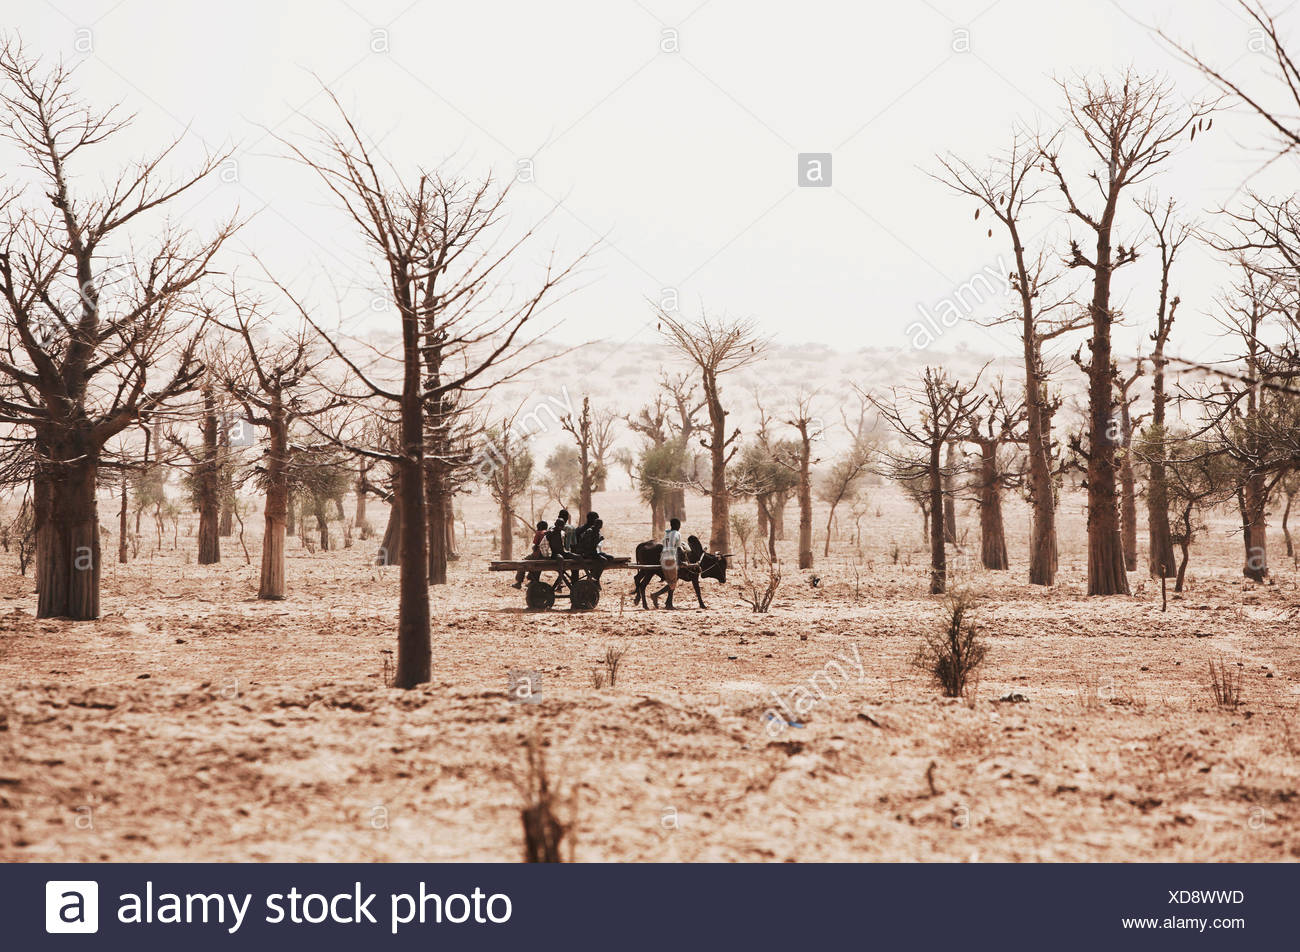 Children with a cart in stark landscape with trees, Dogon Land, Mopti region, Mali - Stock Image